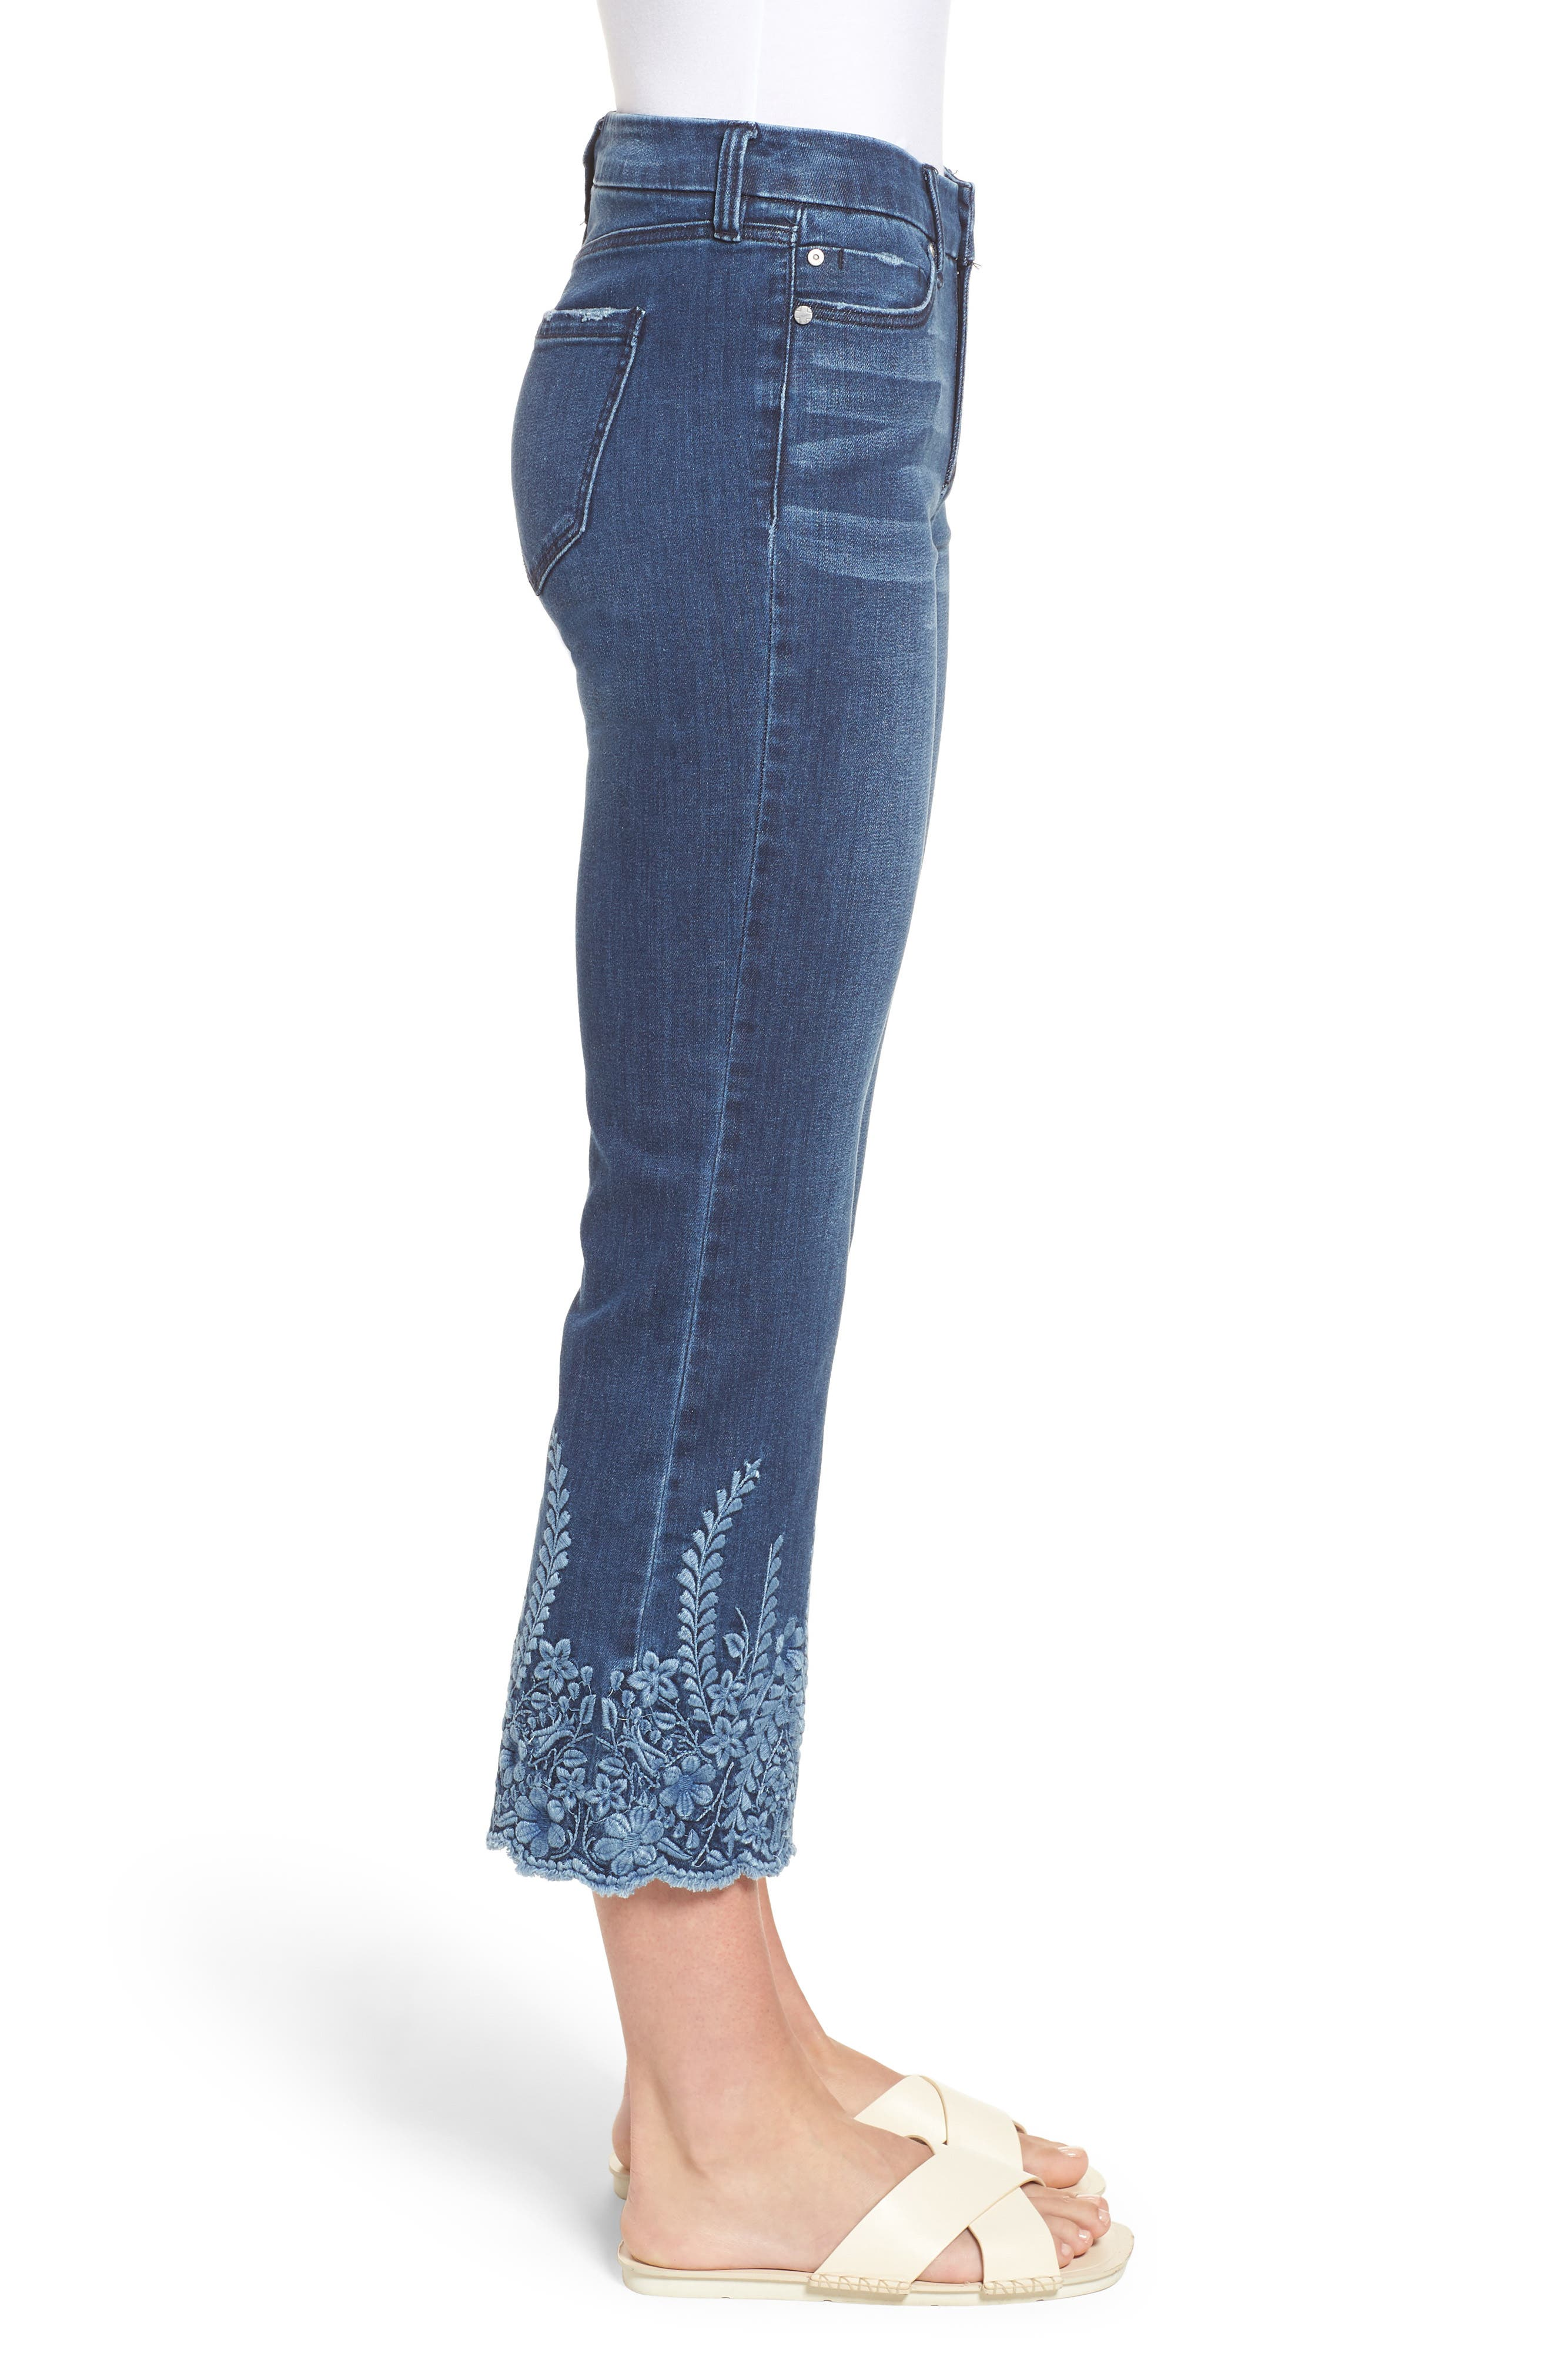 LVPL by Liverpool Coco Embroidered Hem Crop Jeans,                             Alternate thumbnail 3, color,